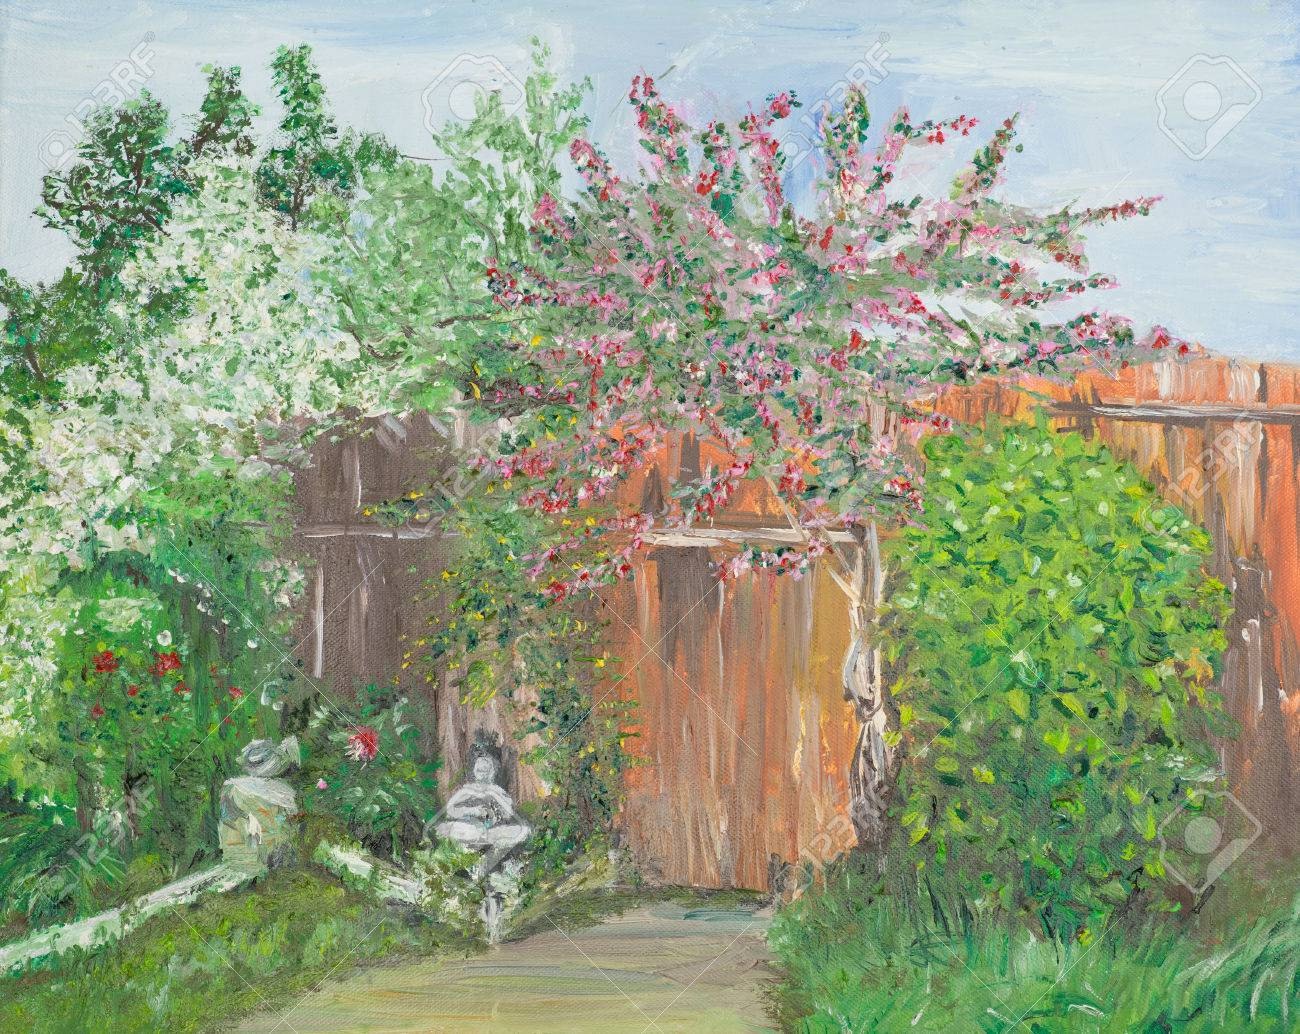 Oil Painting Illustrating A Backyard With Blossomed Trees And ...